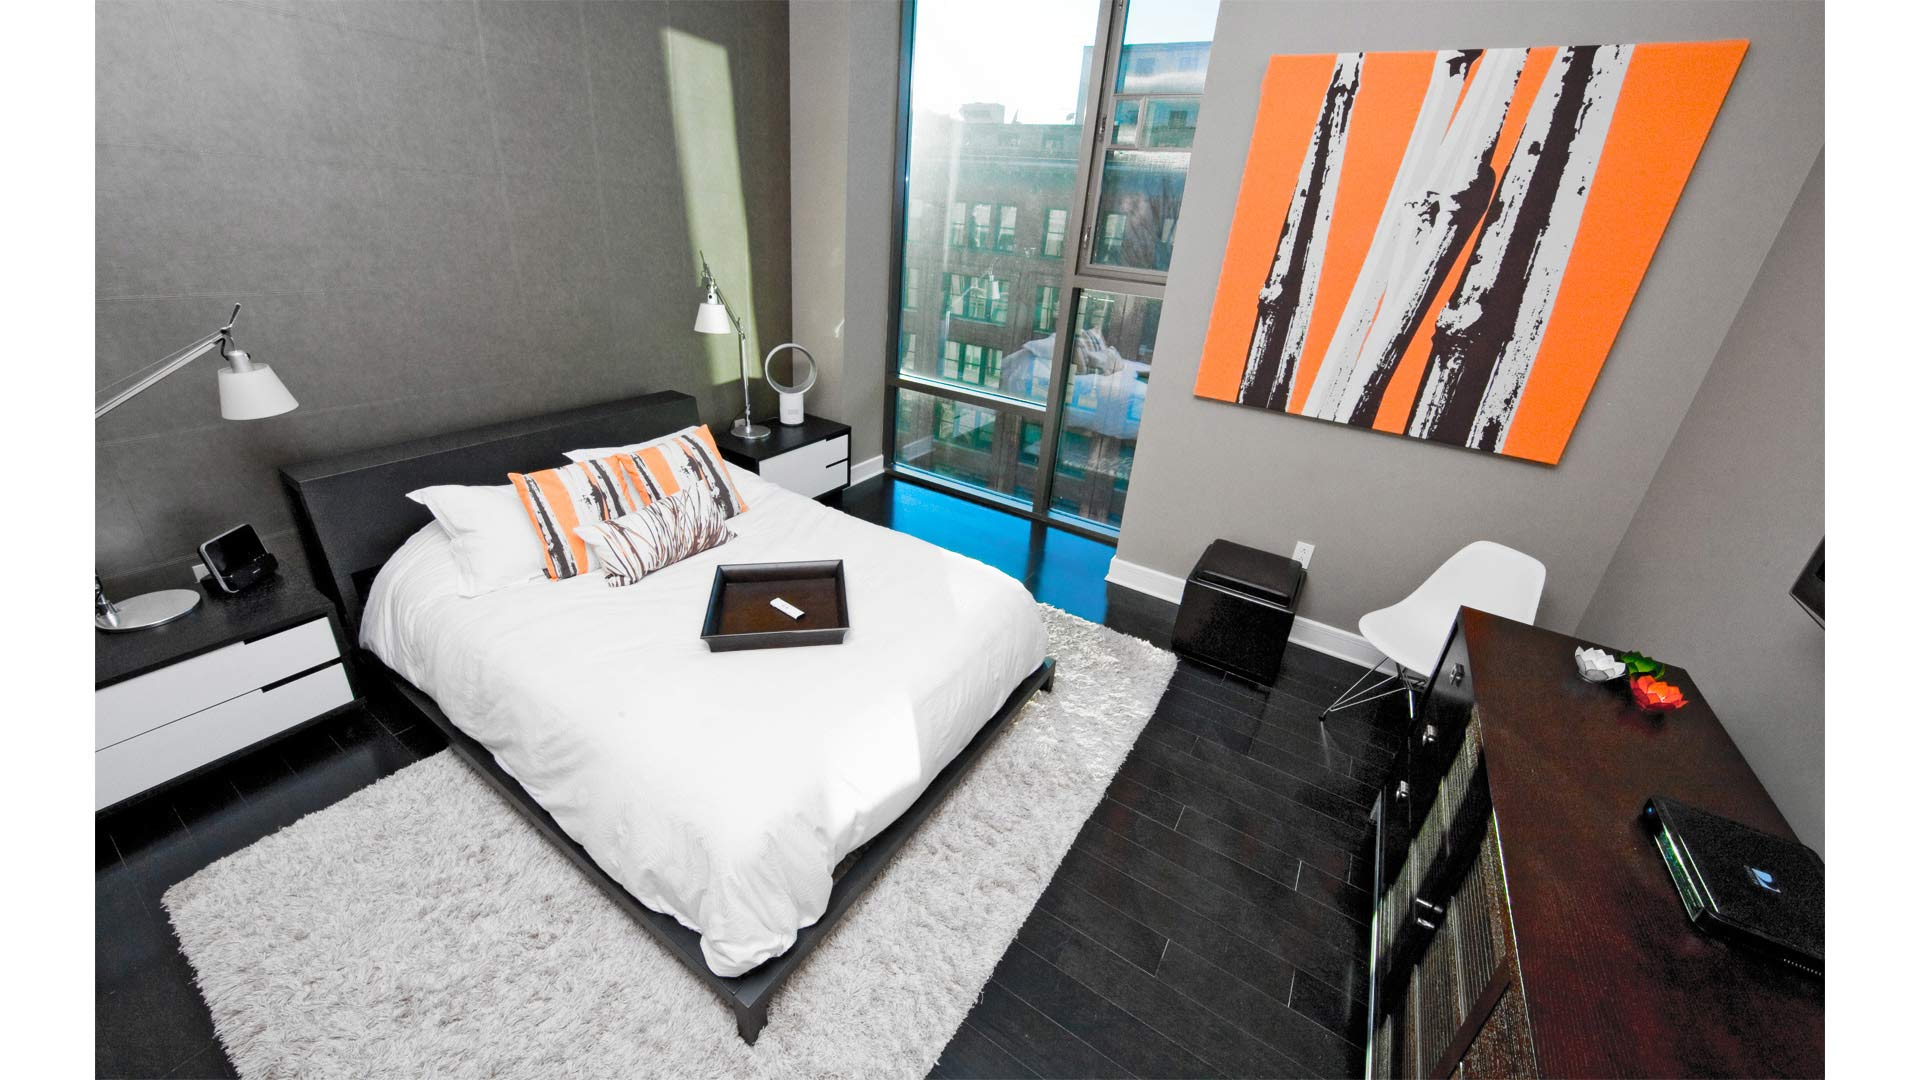 Master Suite include new steel bec and other furnishings, including new roller blinds - Industrial Modern Interior (Allen Plaza) - Downtown Indianapolis